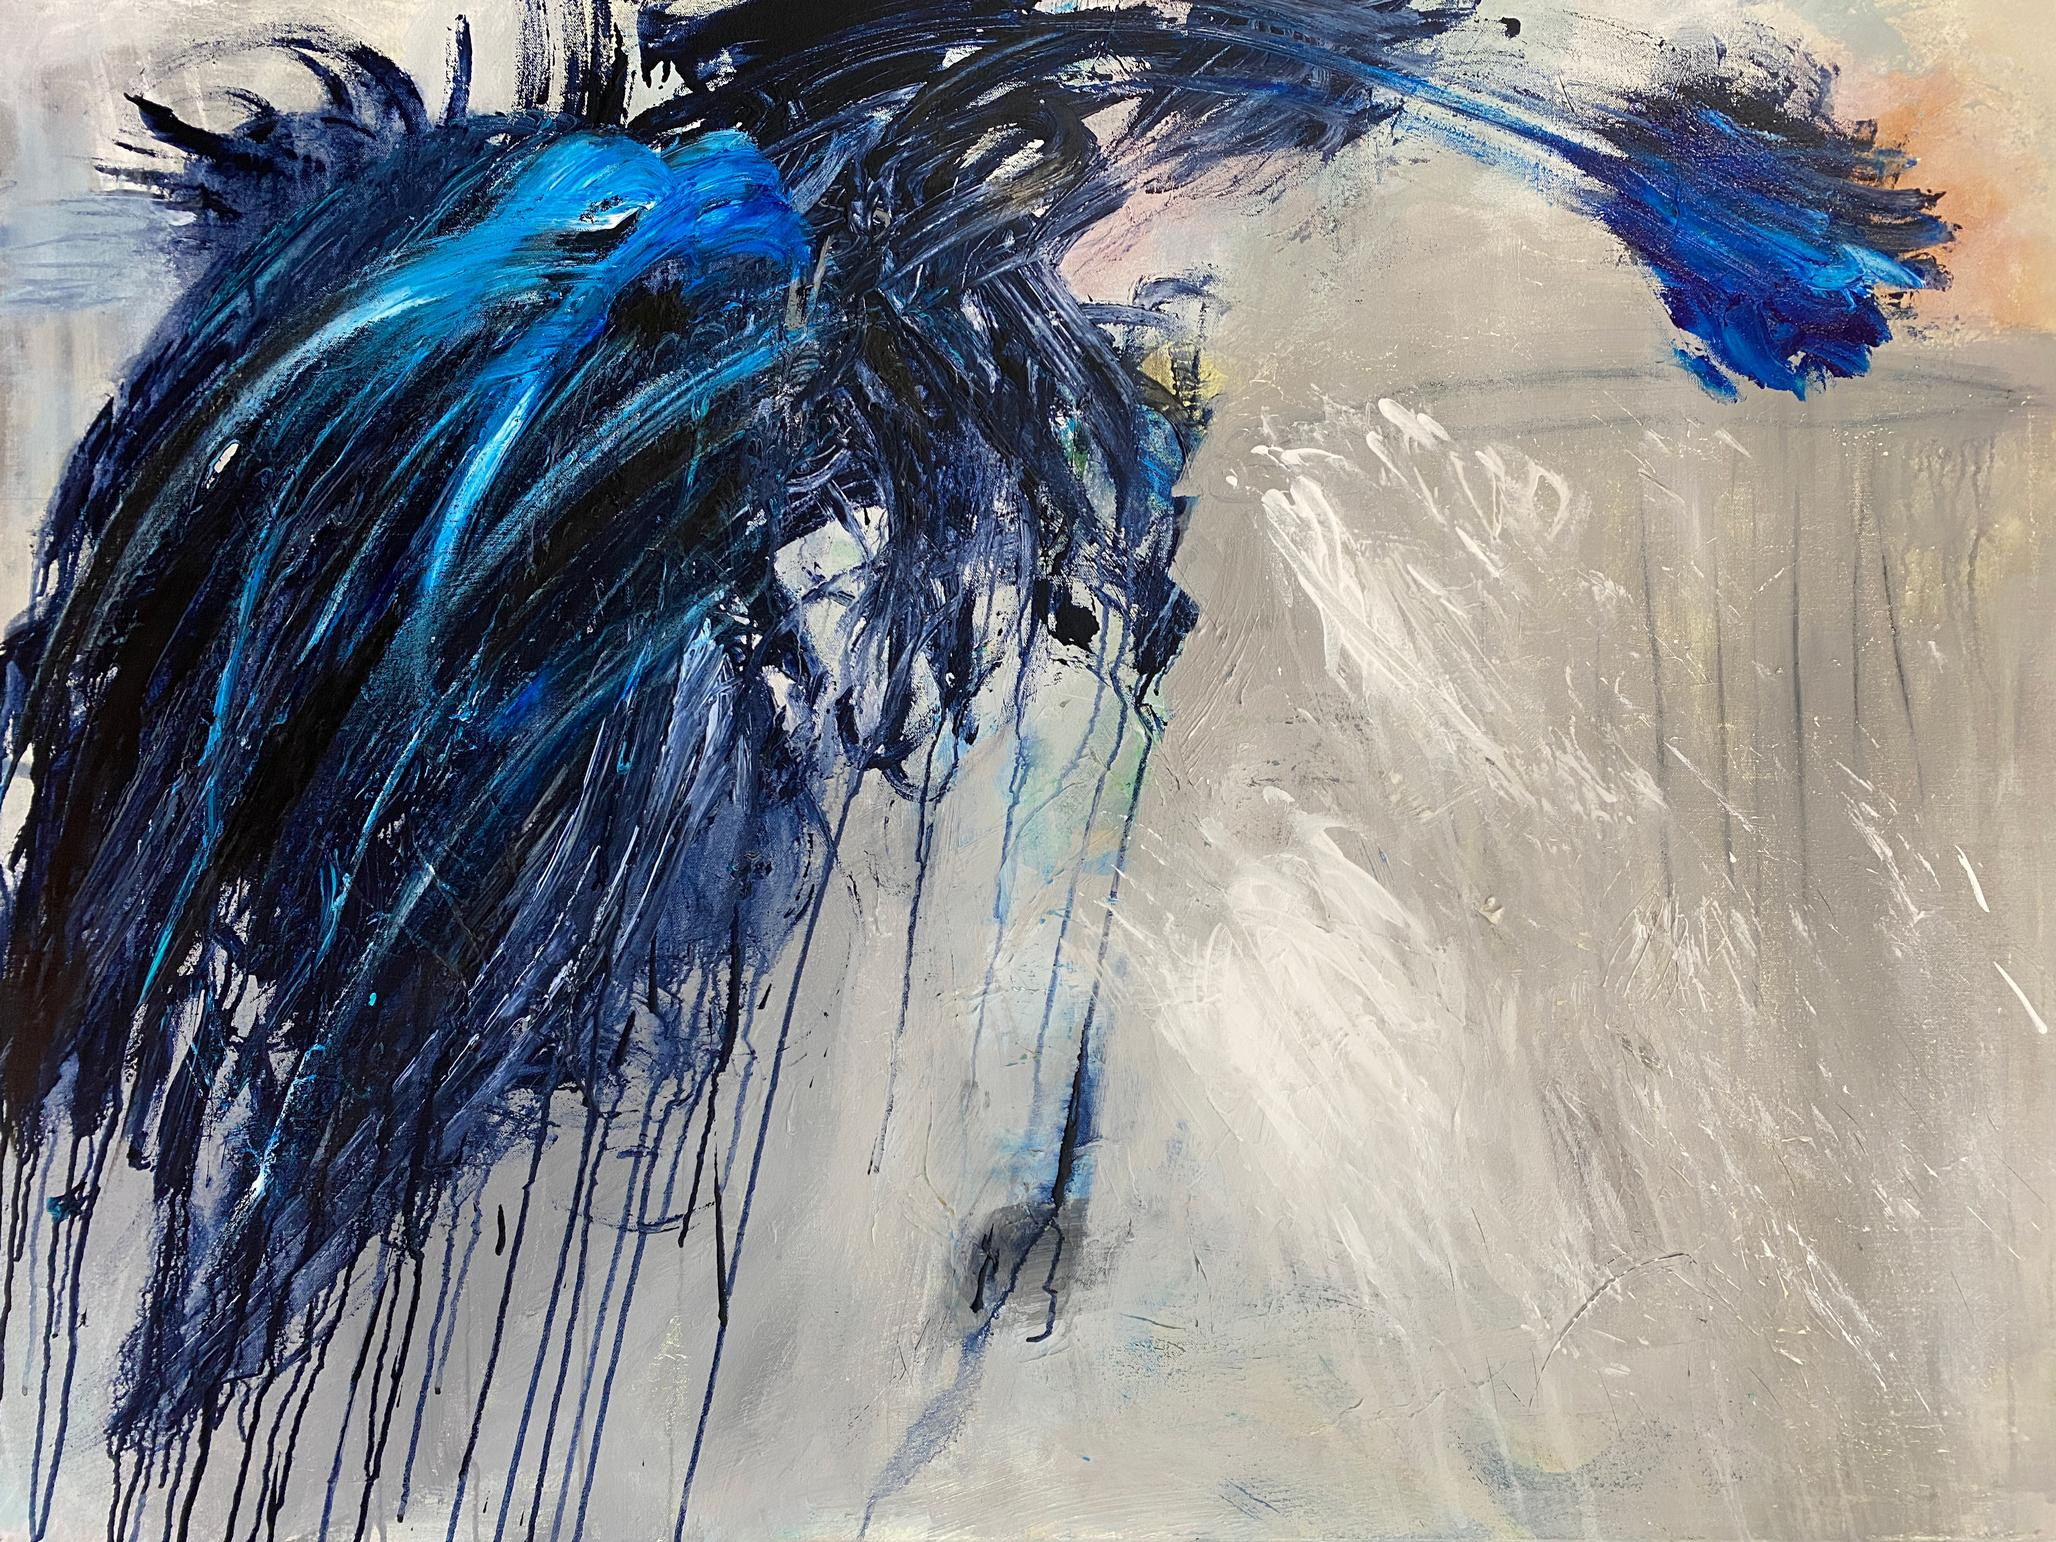 """""""The Conflict"""", Brahms, abstract, acrylic painting, bold, blues, greys"""